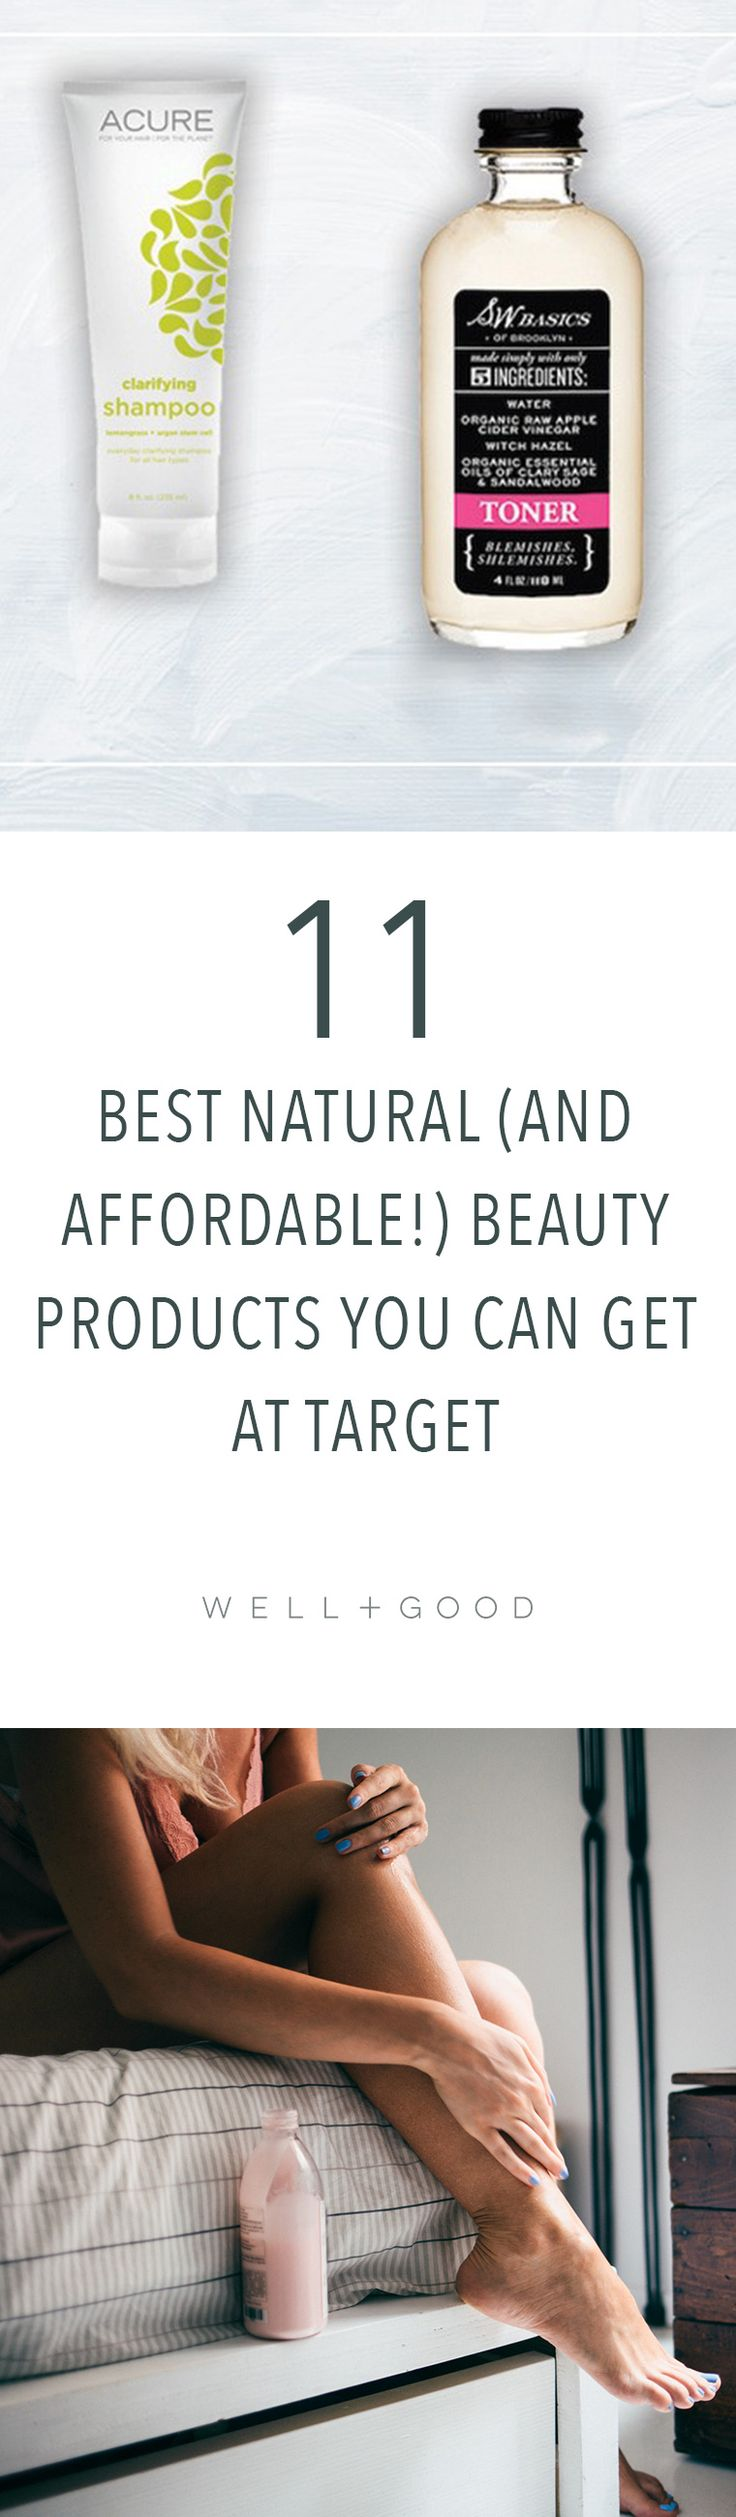 Best natural beauty products to buy at Target